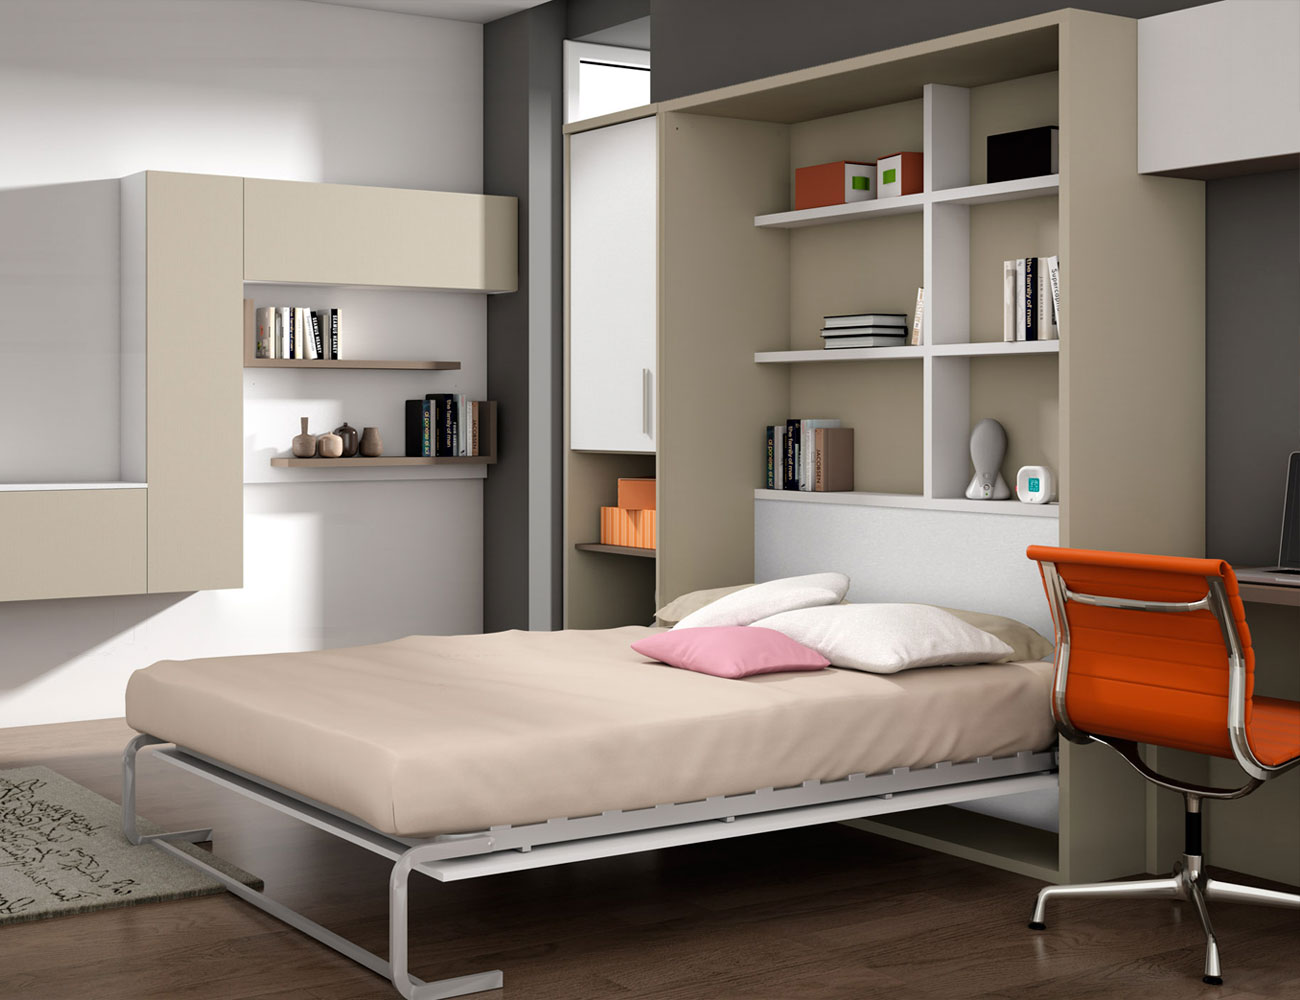 Cama abatible vertical matrimonio 135 190 estantes